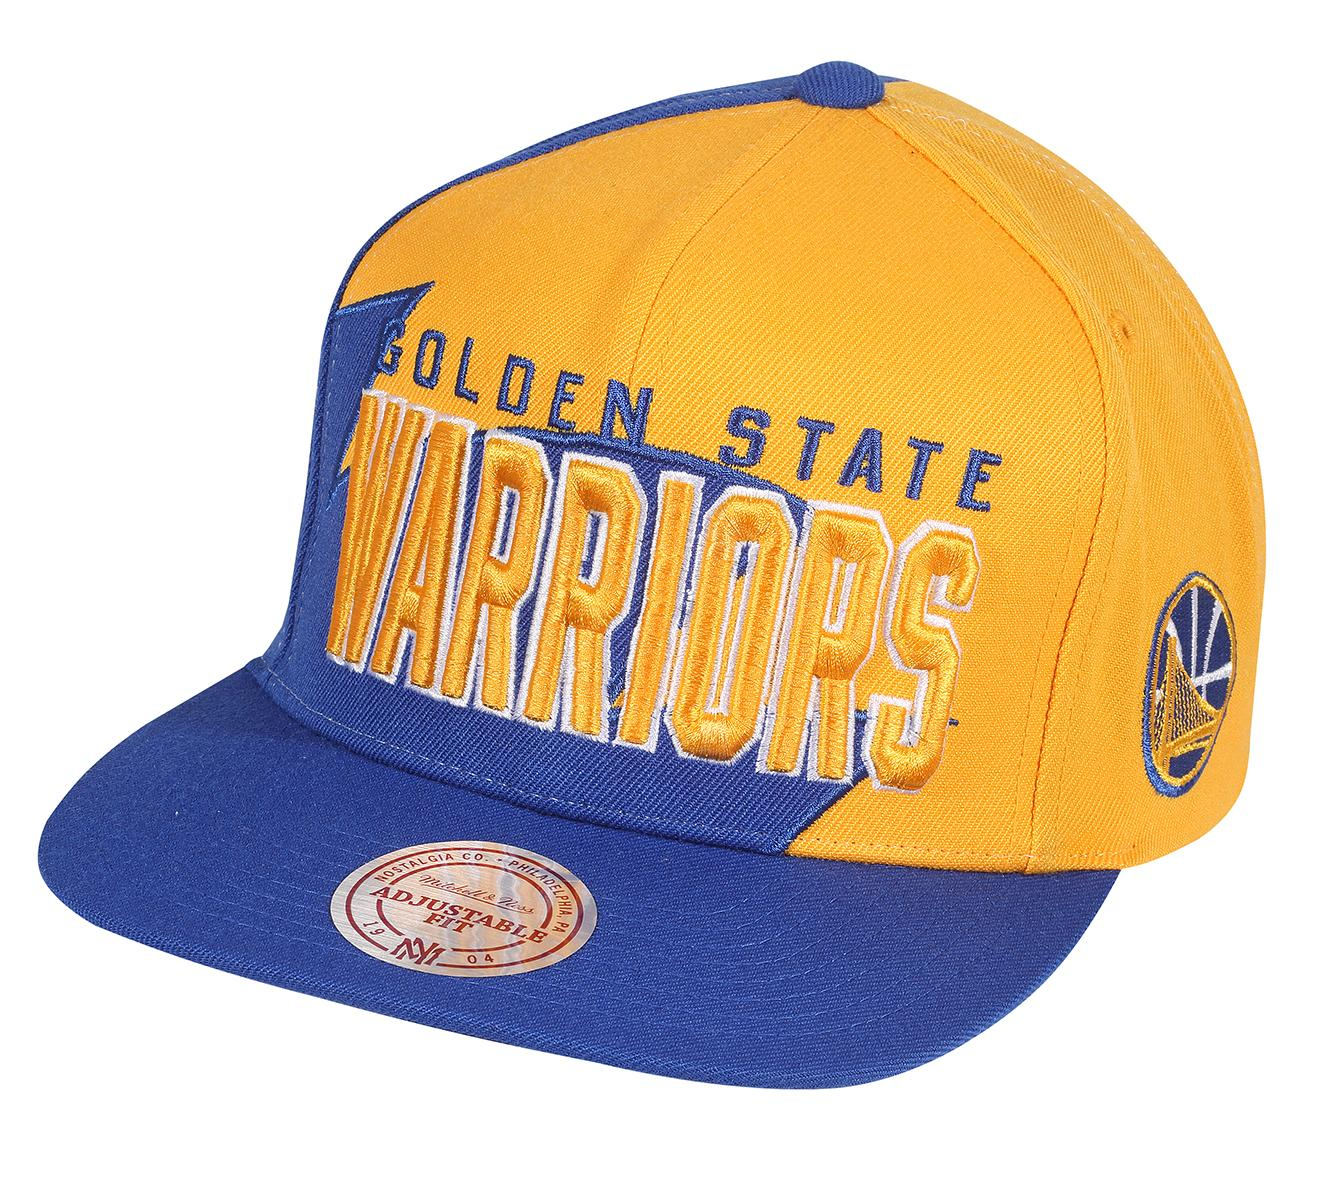 2431a87e1de Sharktooth Snapback Golden State Warriors